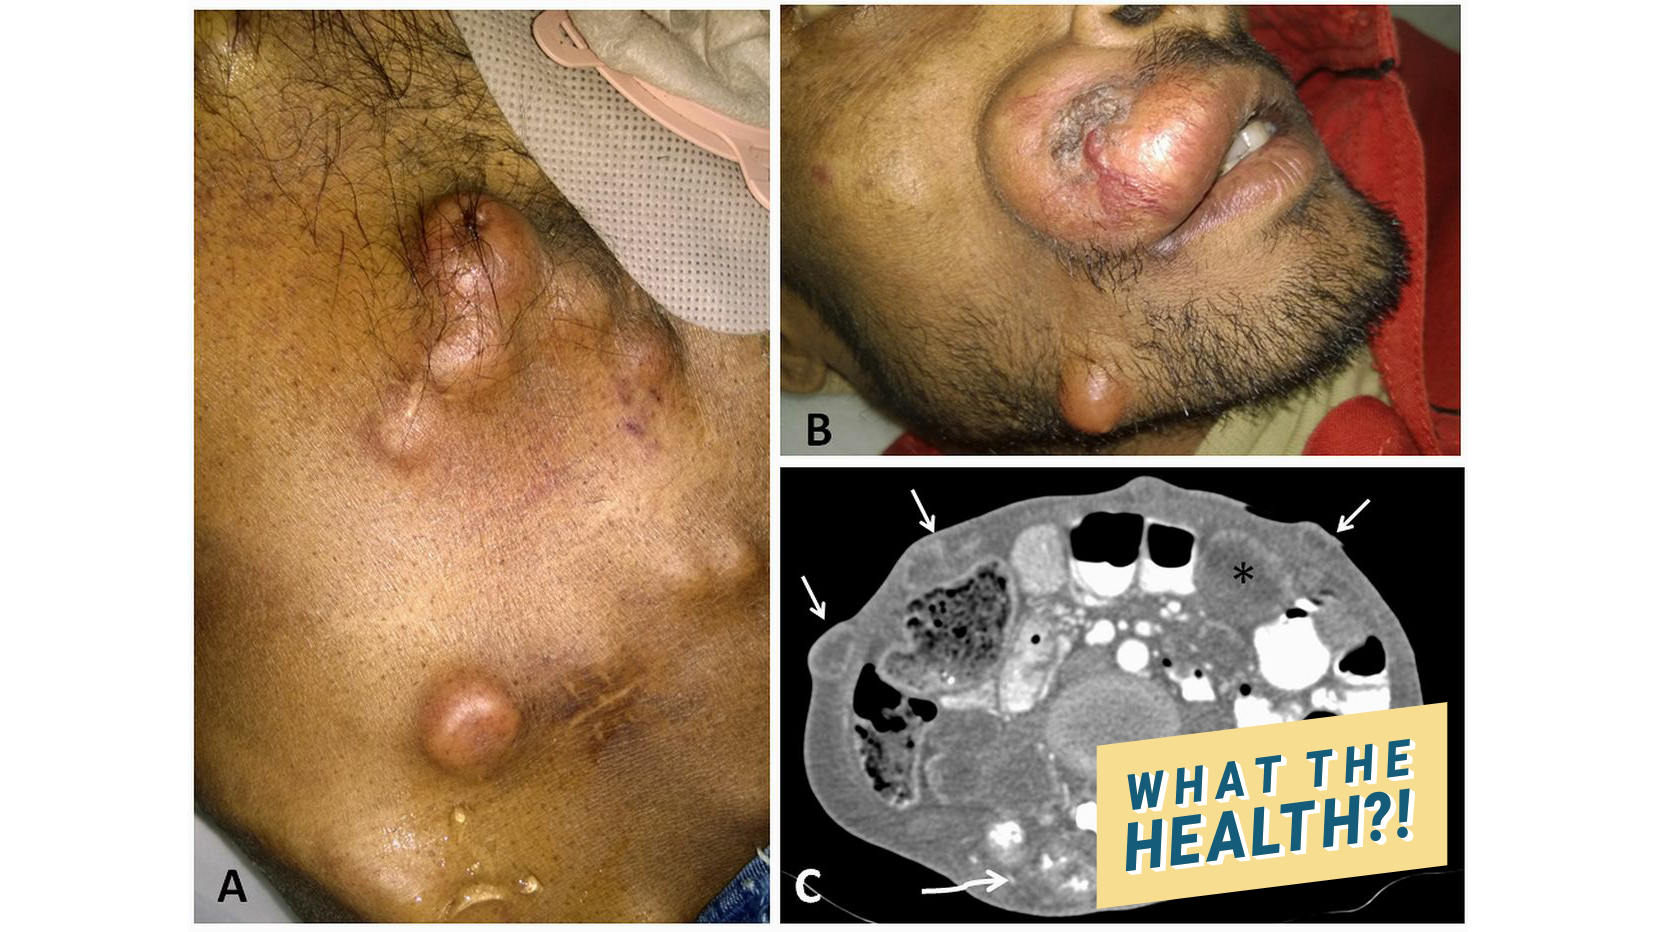 wth Cutaneous metastasis in adenocarcinoma rectum